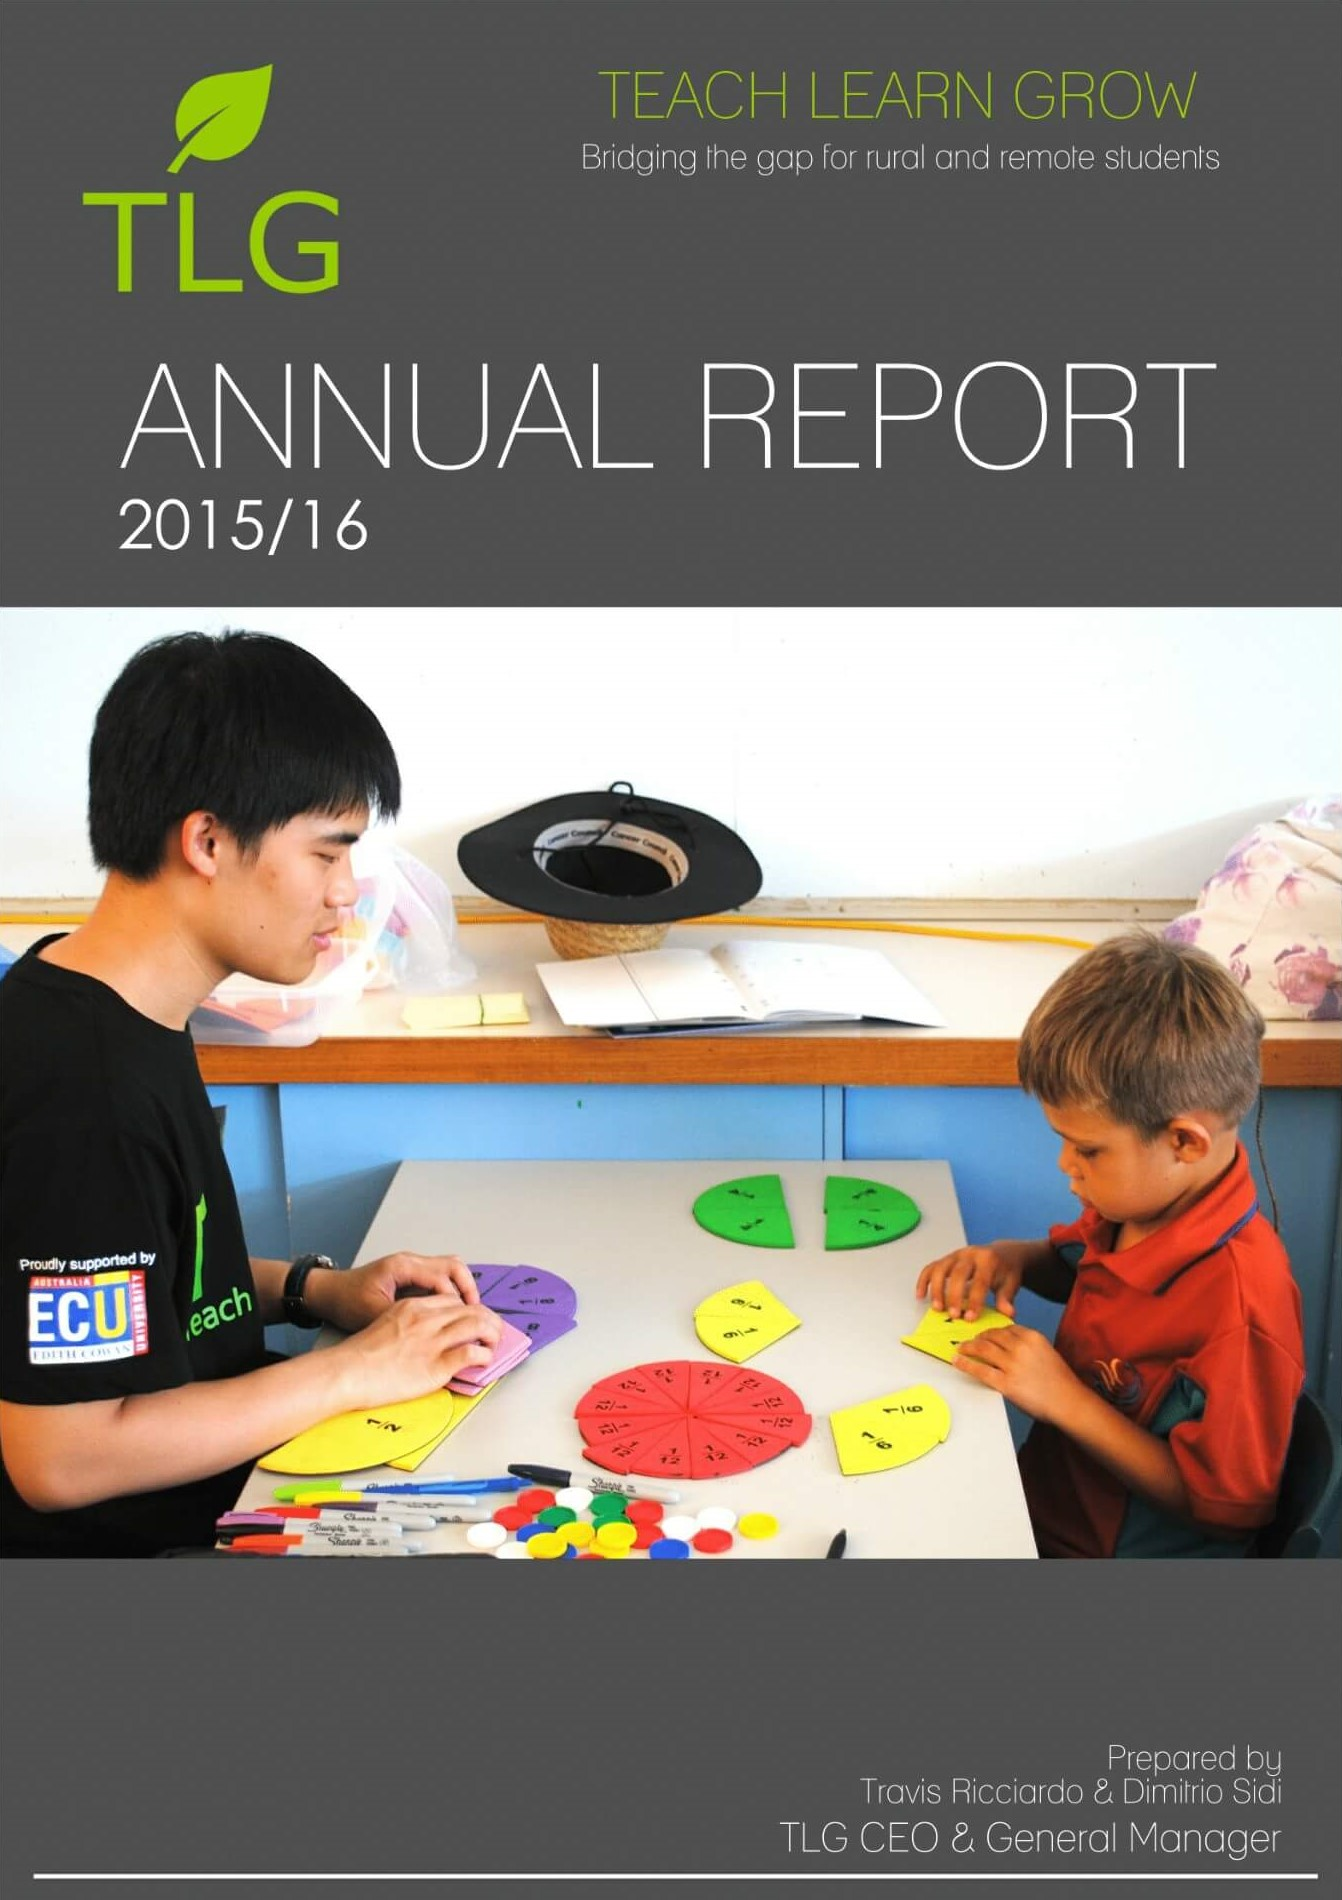 tlg-annual-report-FY15-01.jpg